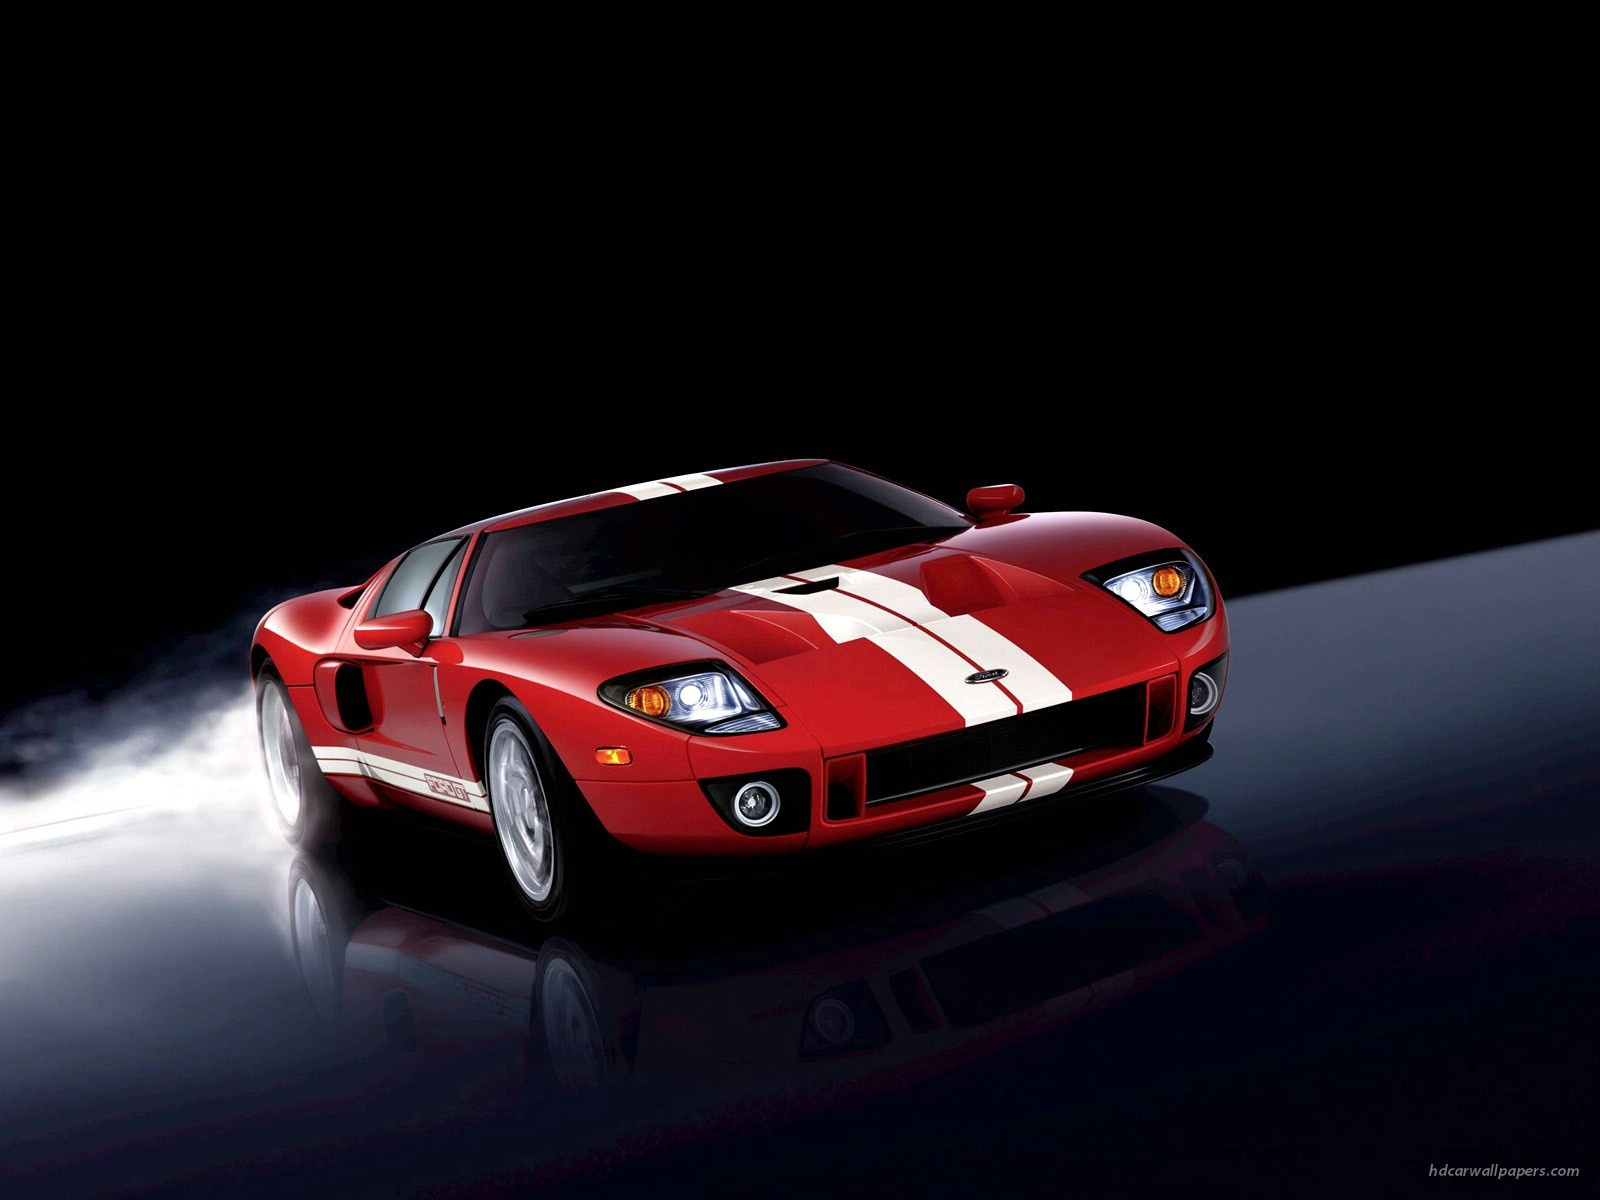 Ford Gt 2 Wallpapers In Jpg Format For Free Download